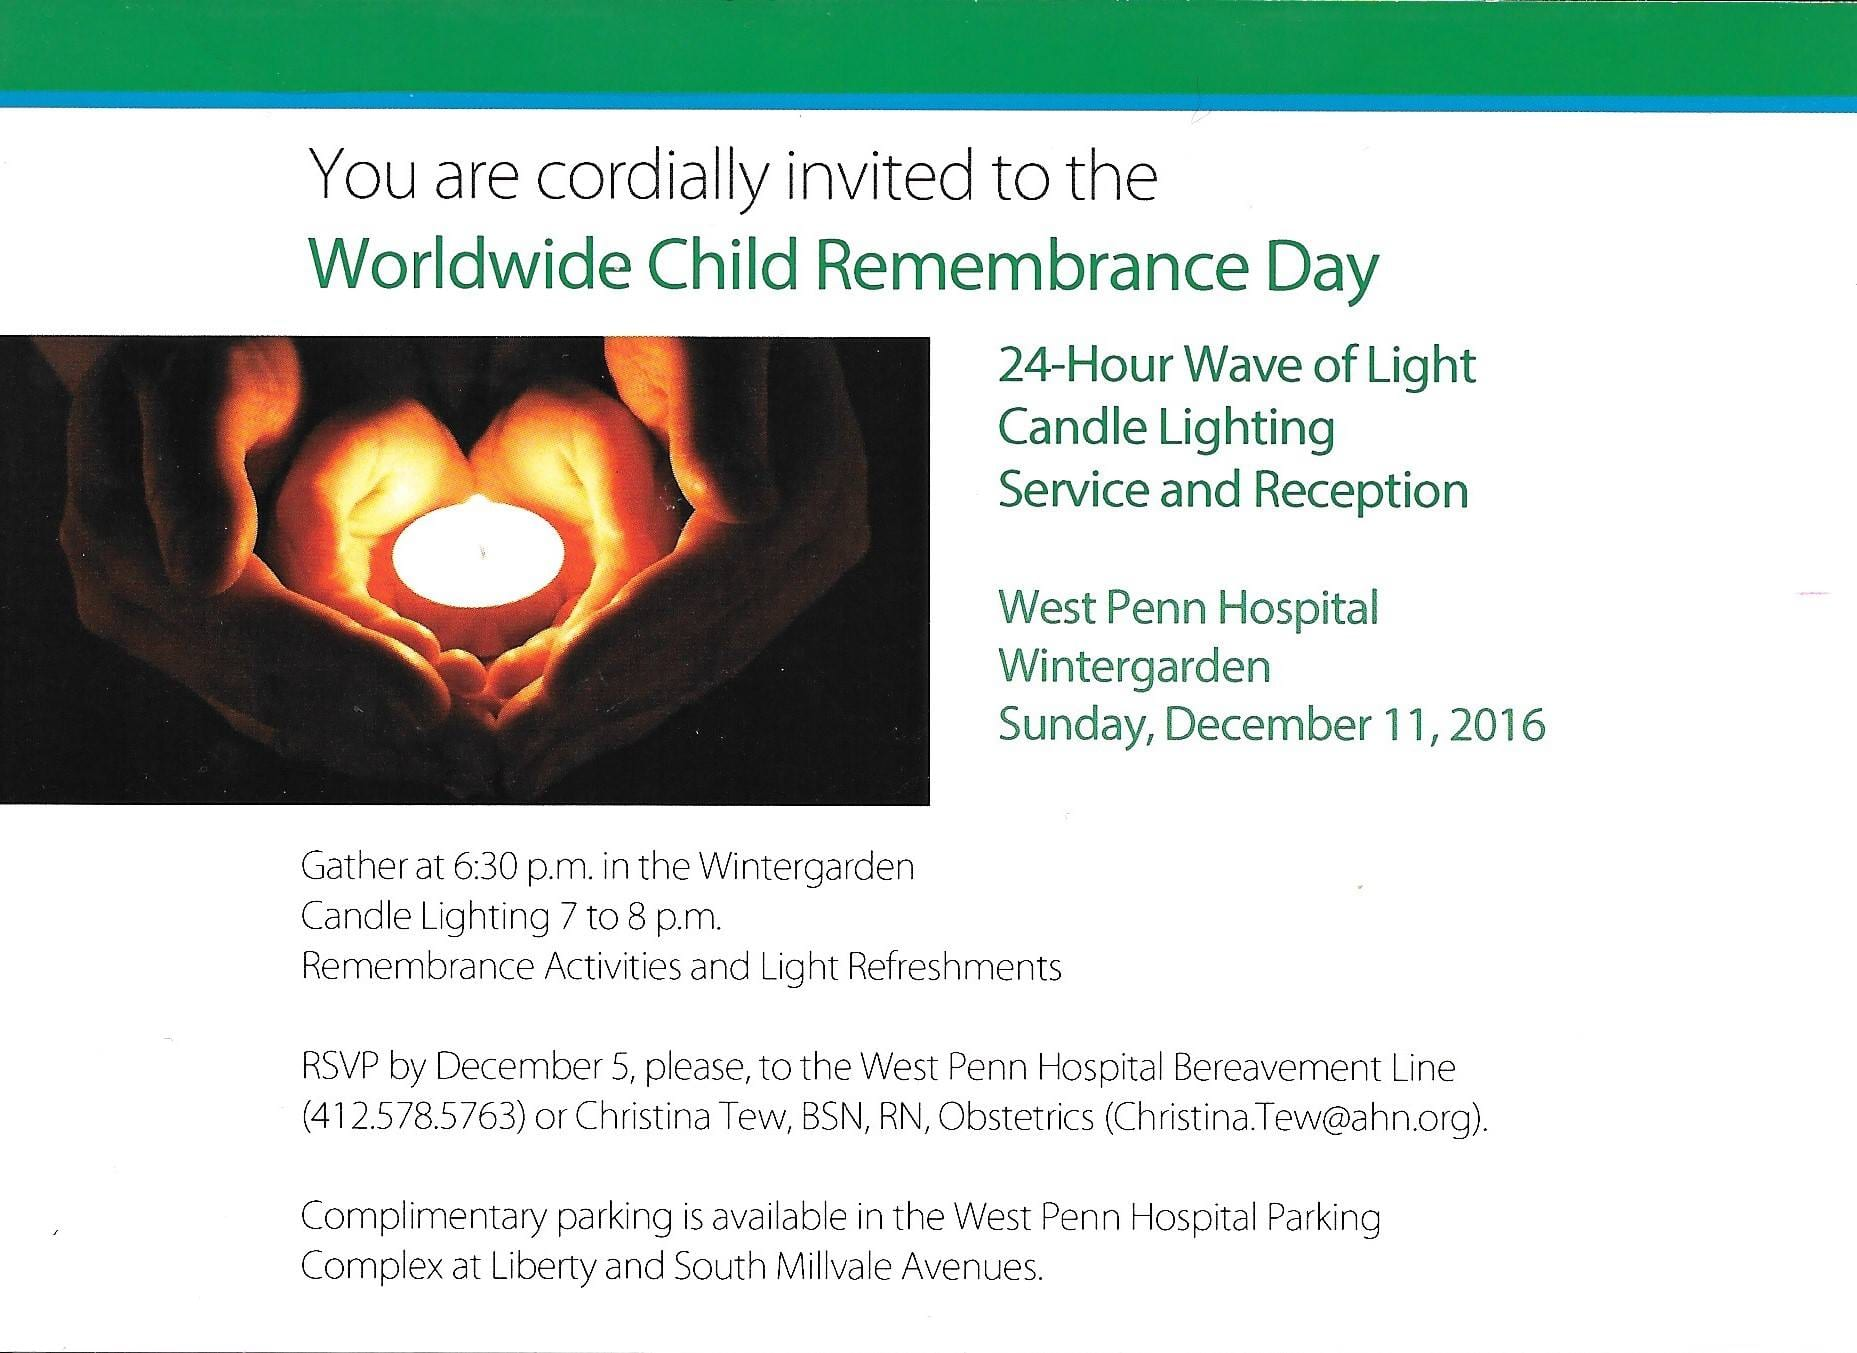 west penn wave of light candle lighting service and reception